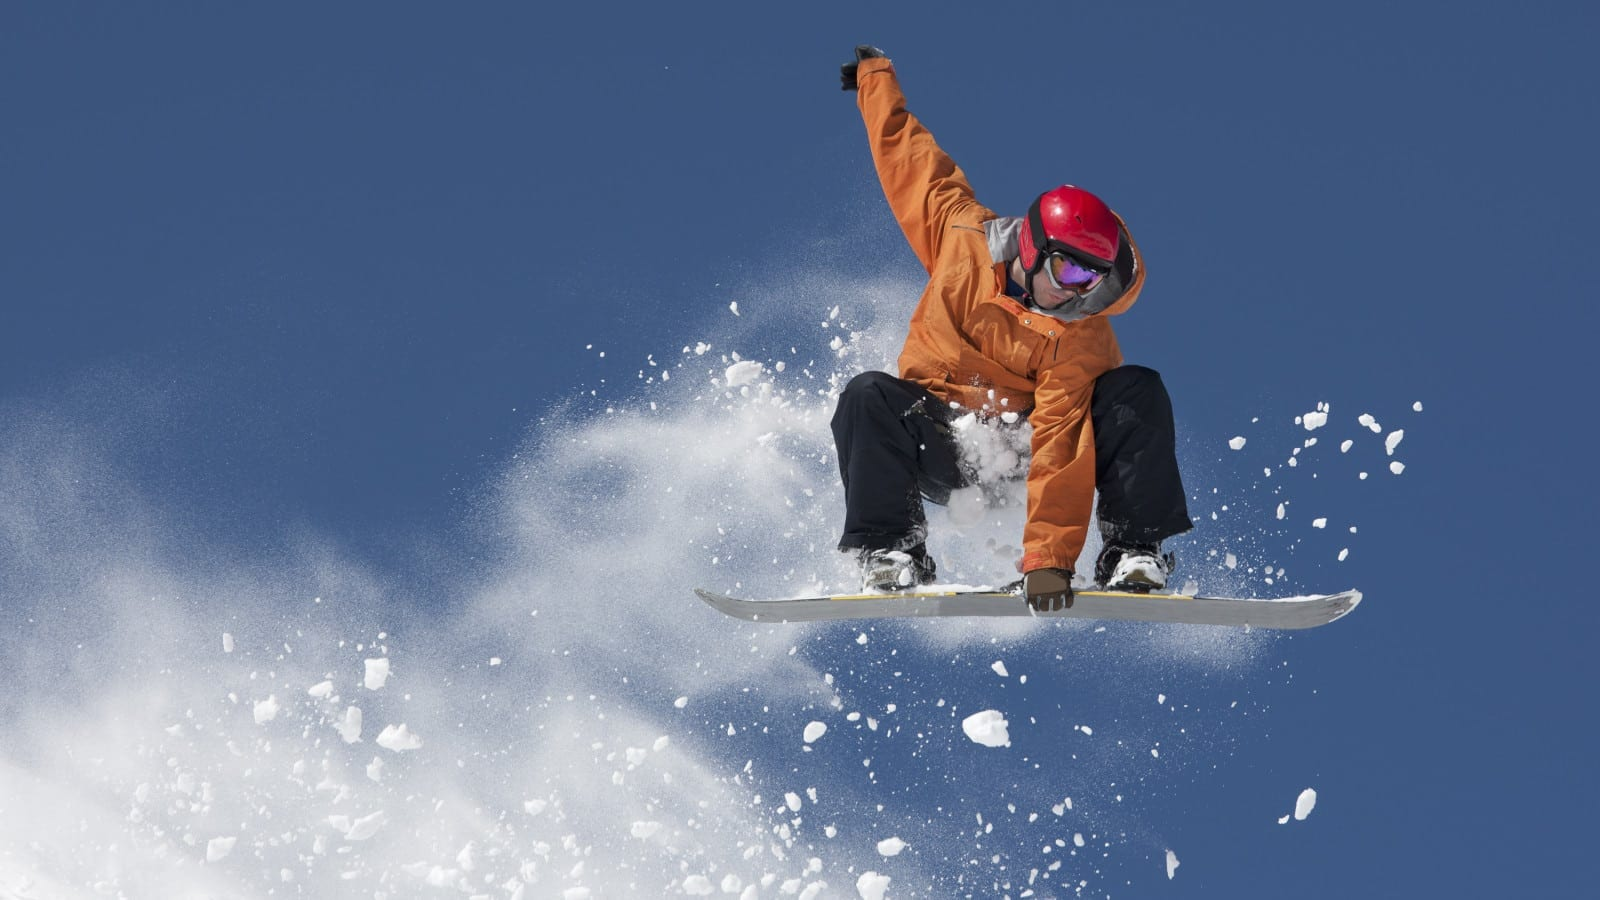 Young Man Snowboarding In The Snow Stock Photo